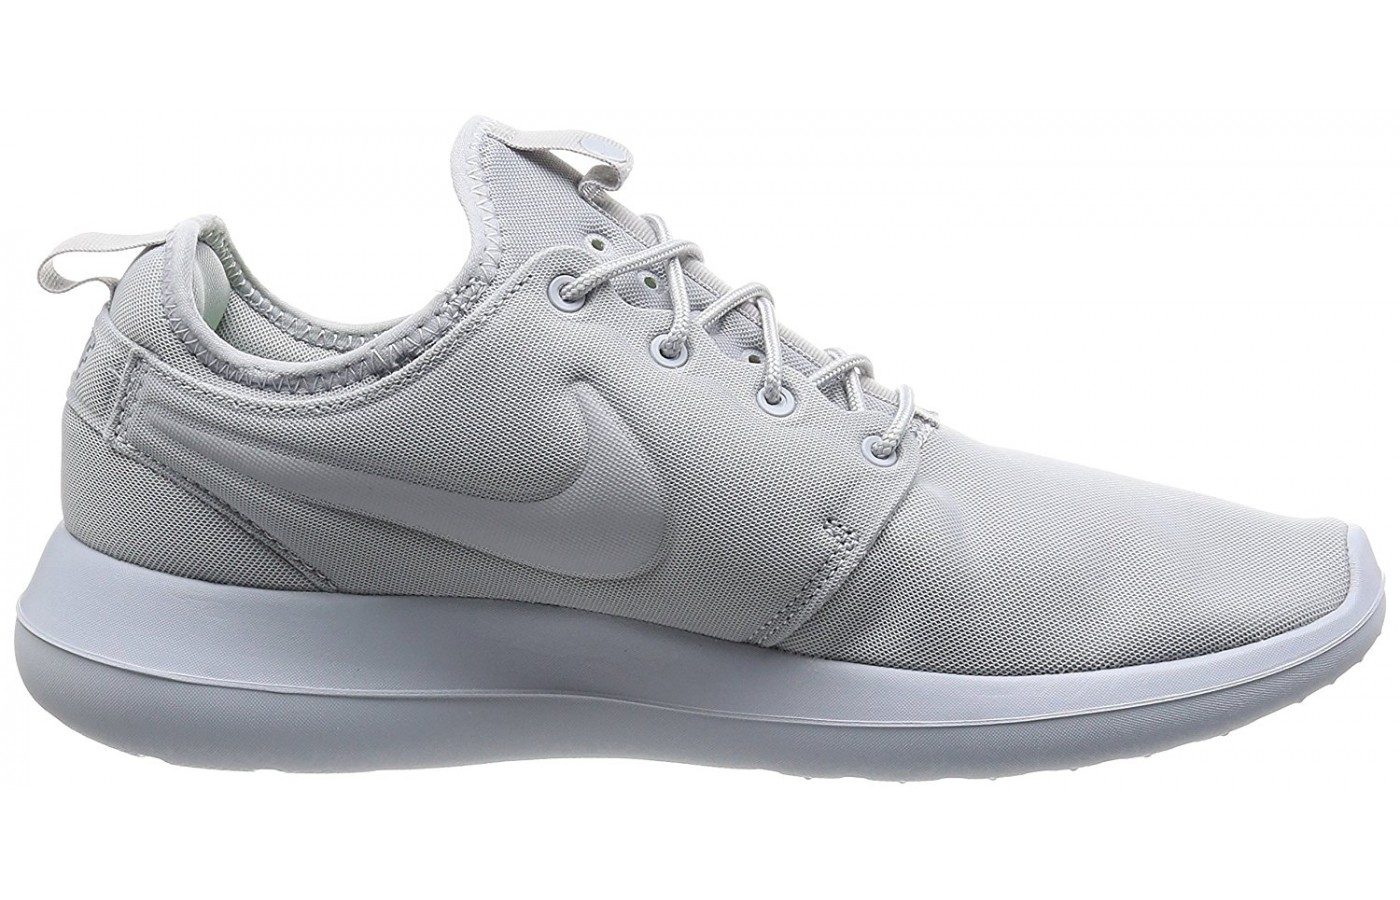 A side view of the Nike Roshe 2 running shoe